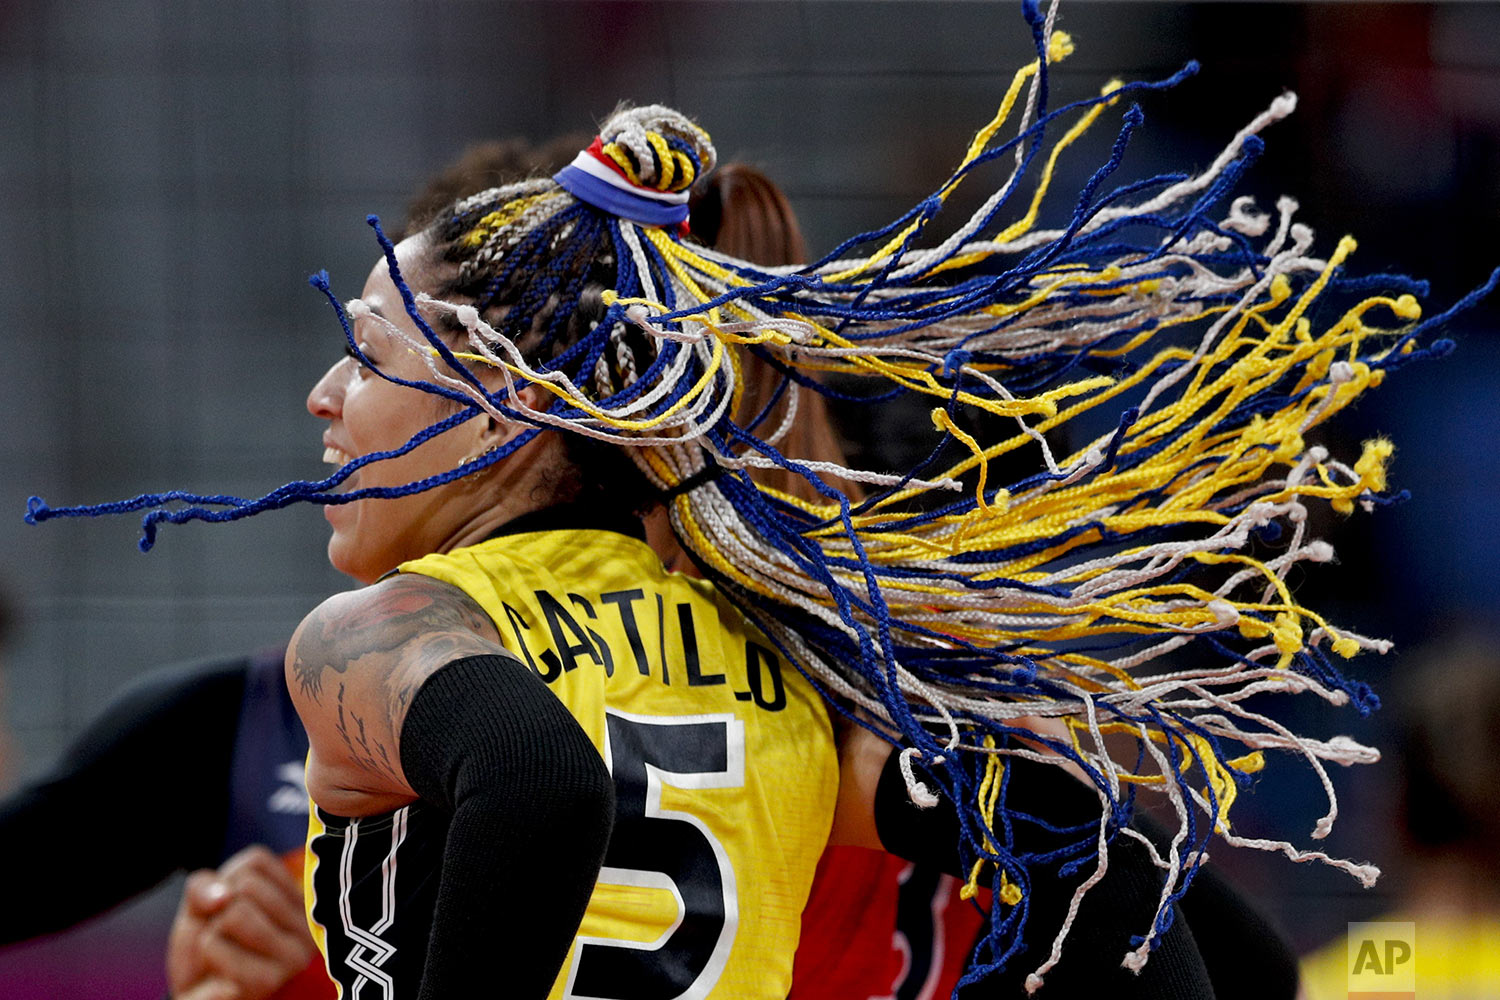 Brenda Castillo of the Dominican Republic jumps during the gold medal women's volleyball match against Colombia at the Pan American Games in Lima, Peru, Sunday, Aug. 11, 2019. (AP Photo/Rebecca Blackwell)